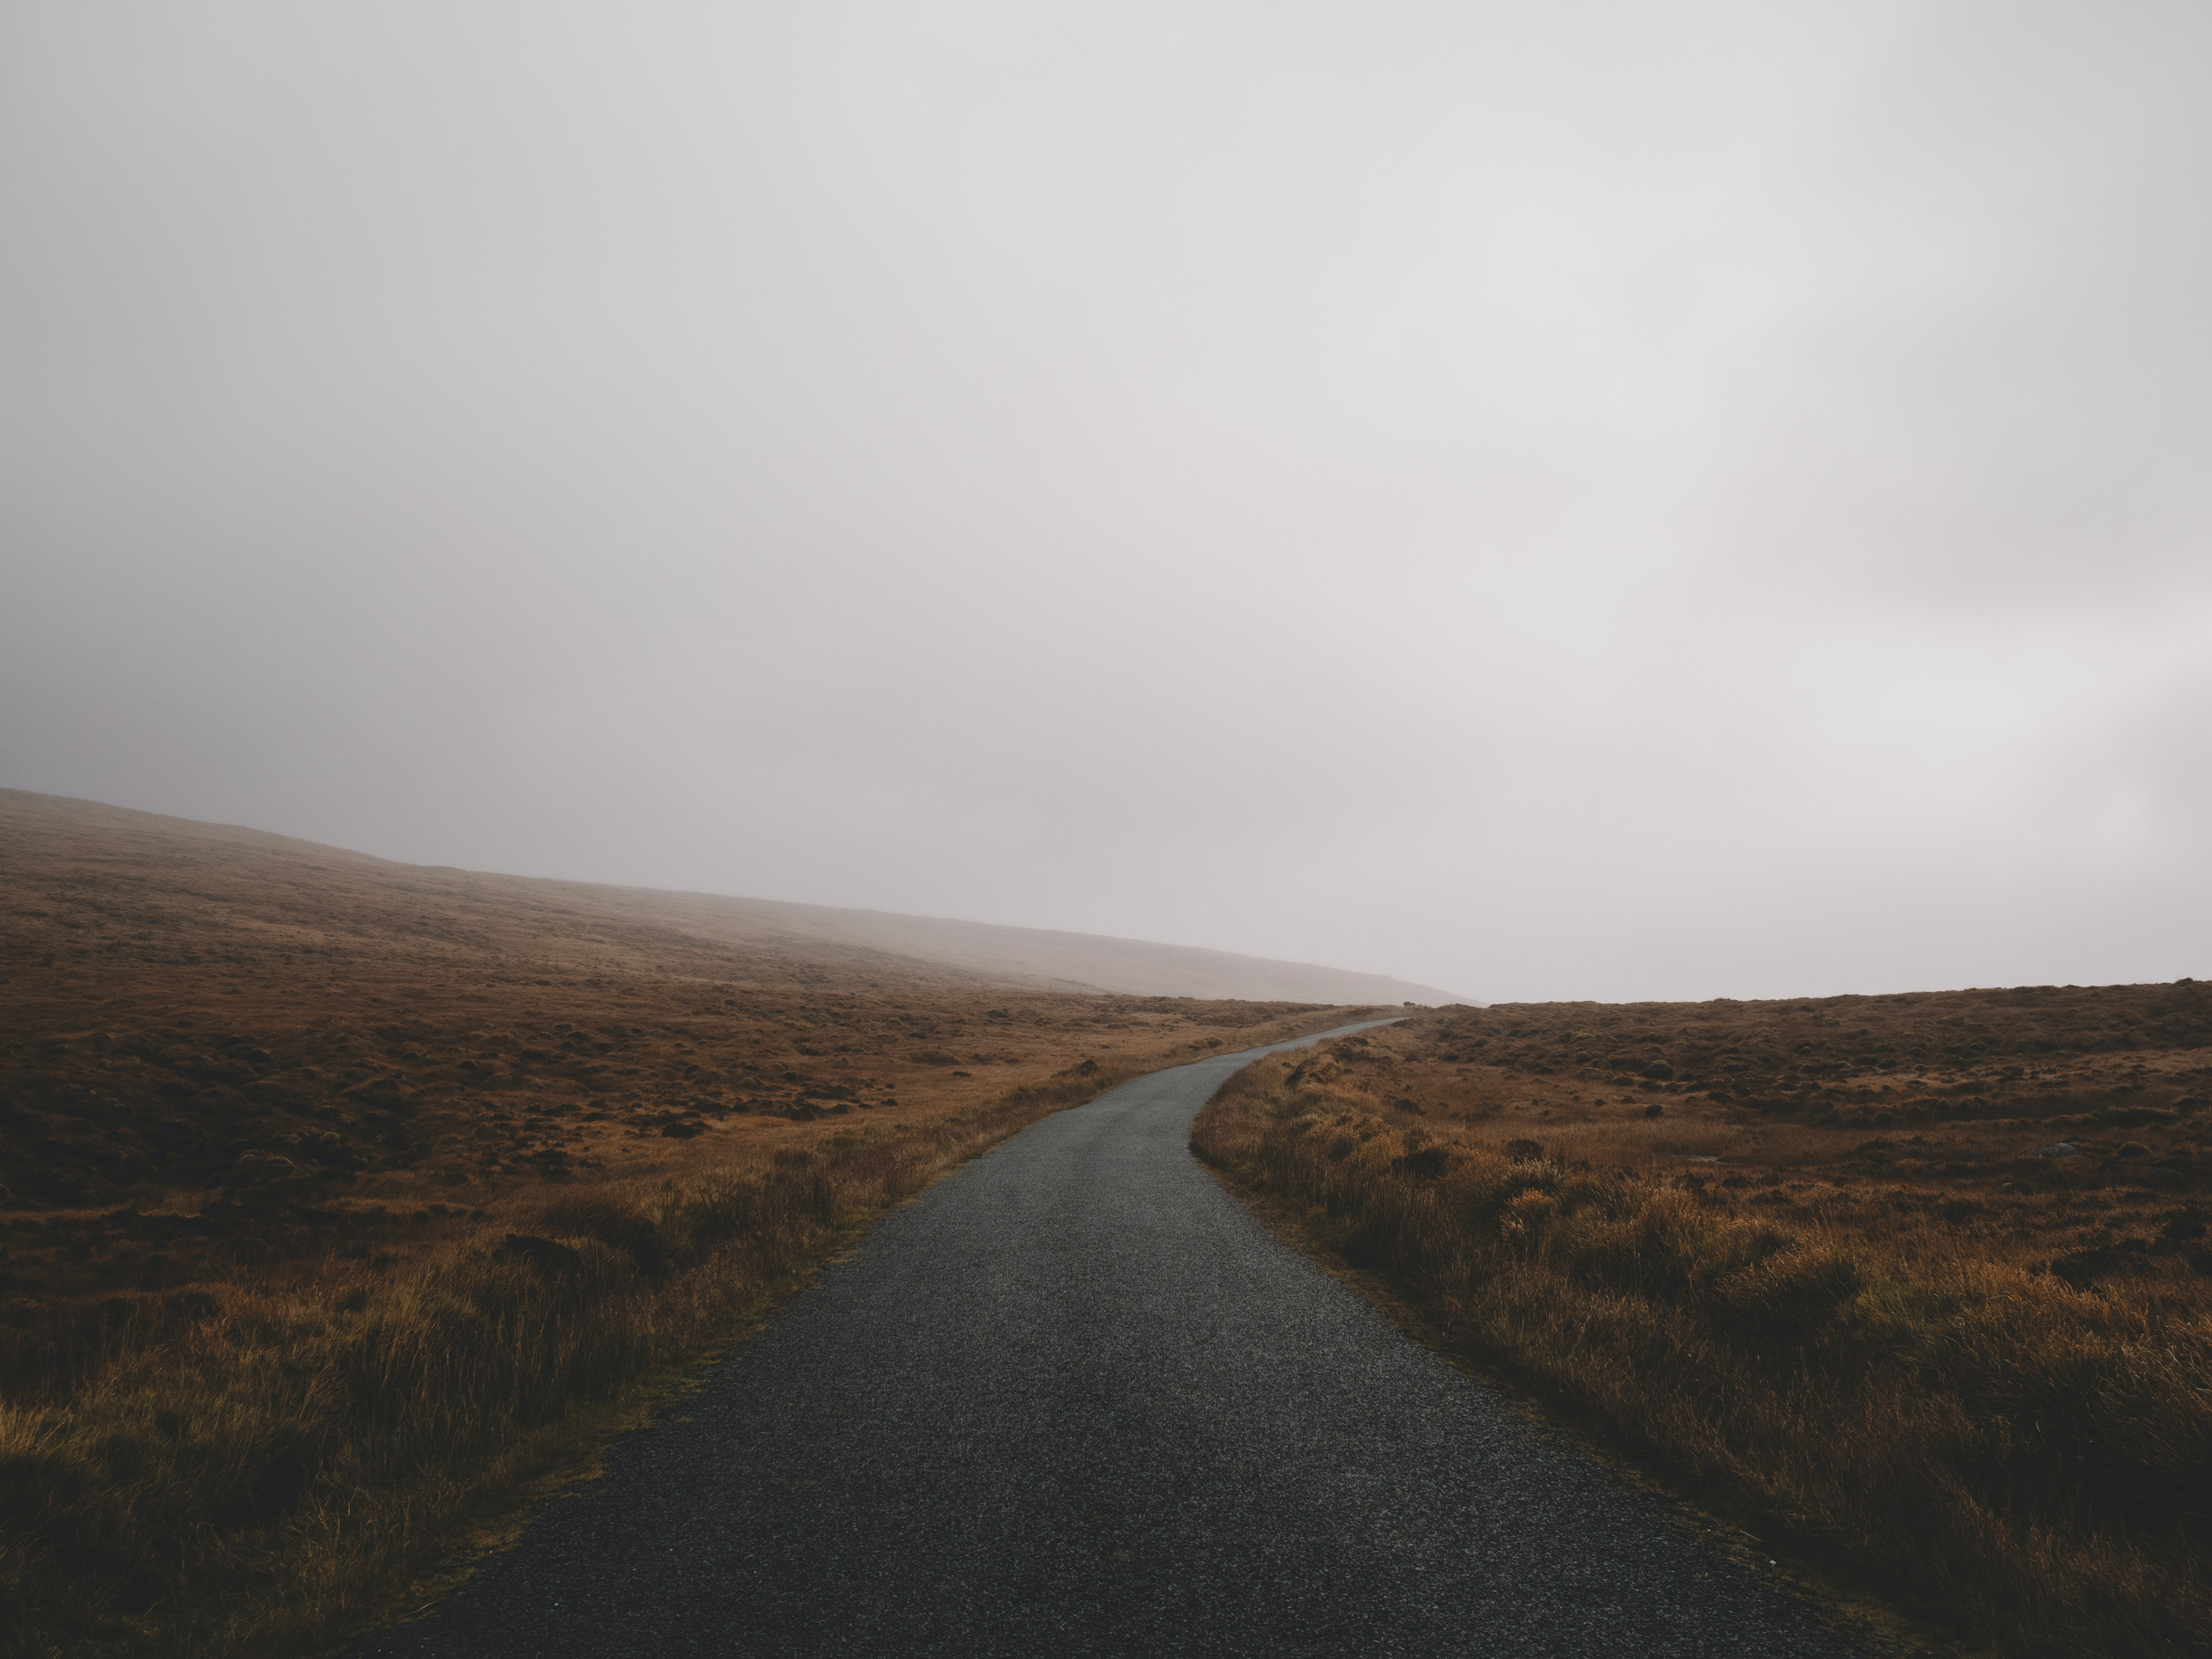 road during foggy weather